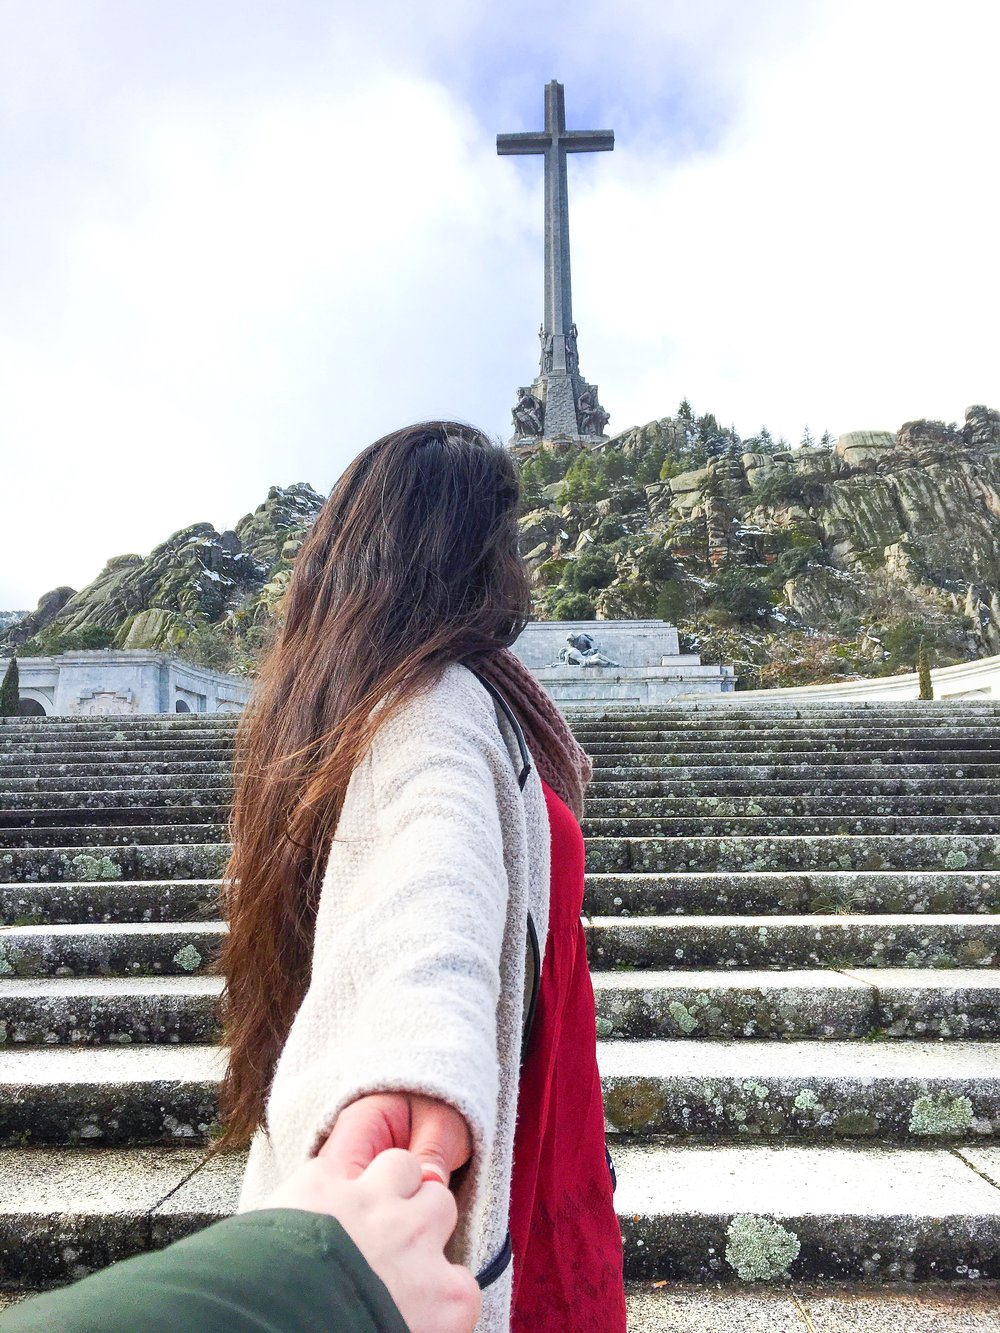 #FollowMeTo: Valle de Los Caidos